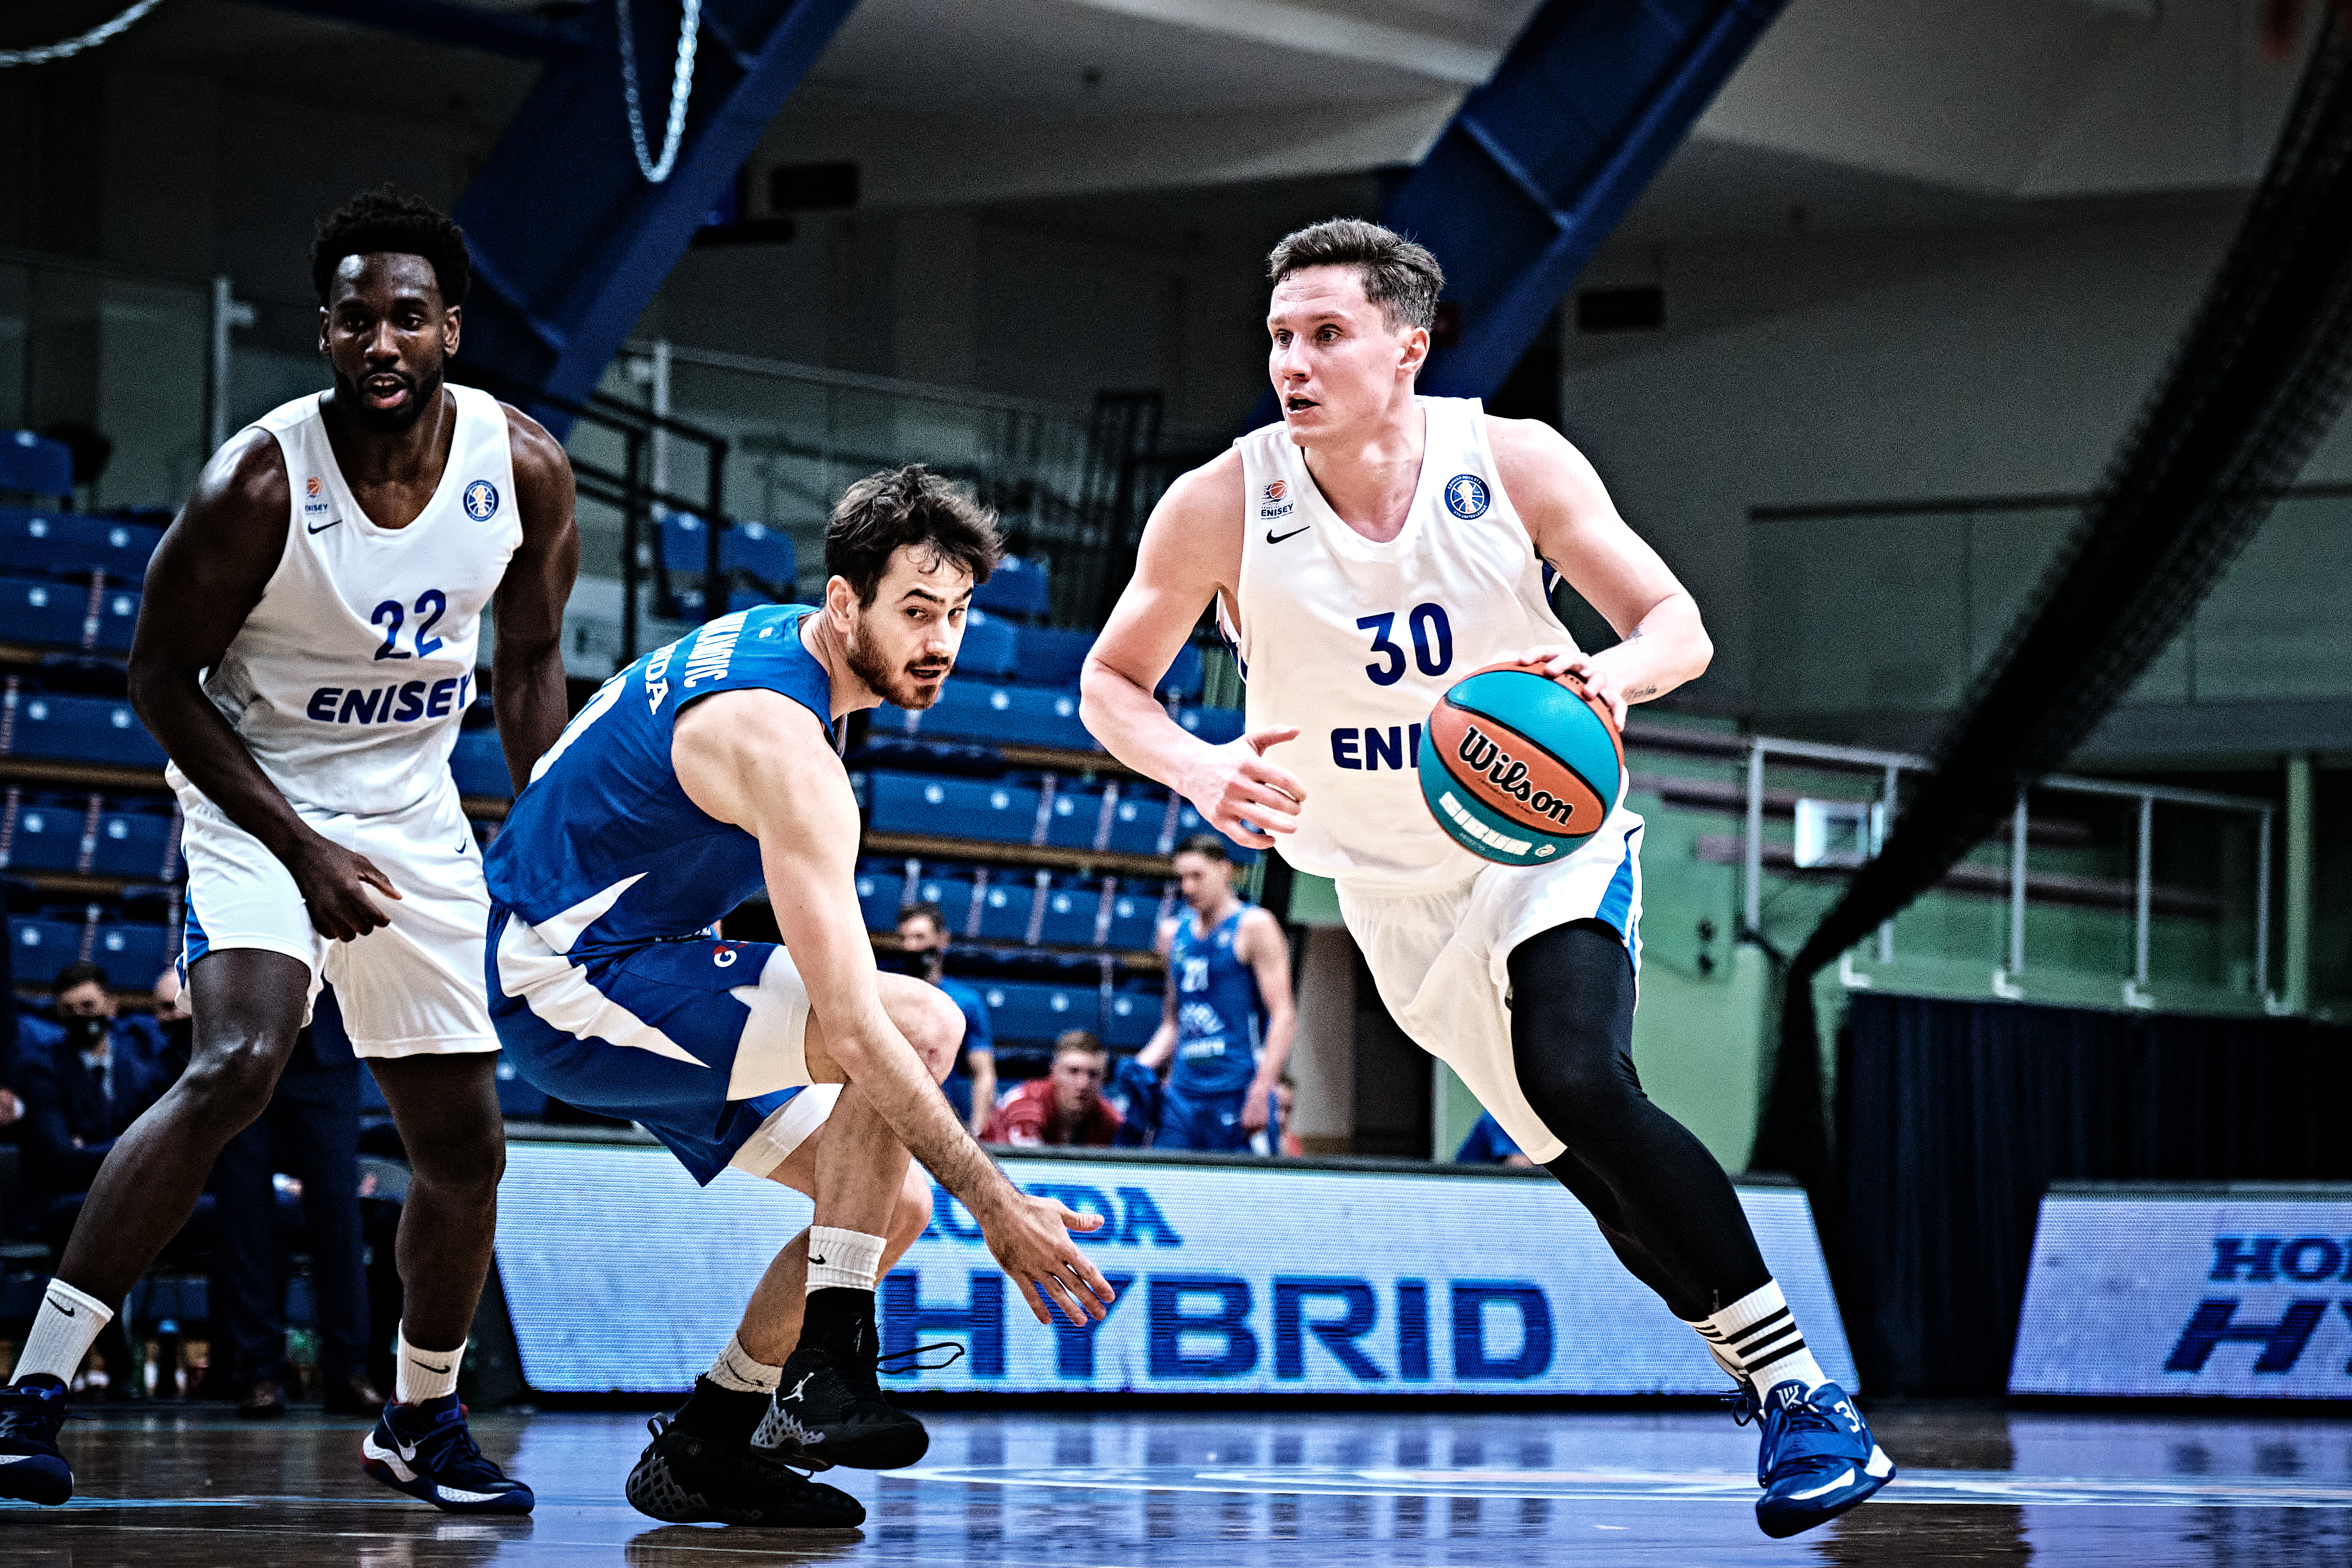 Enisey win in Tallinn and outpace Kalev in standings